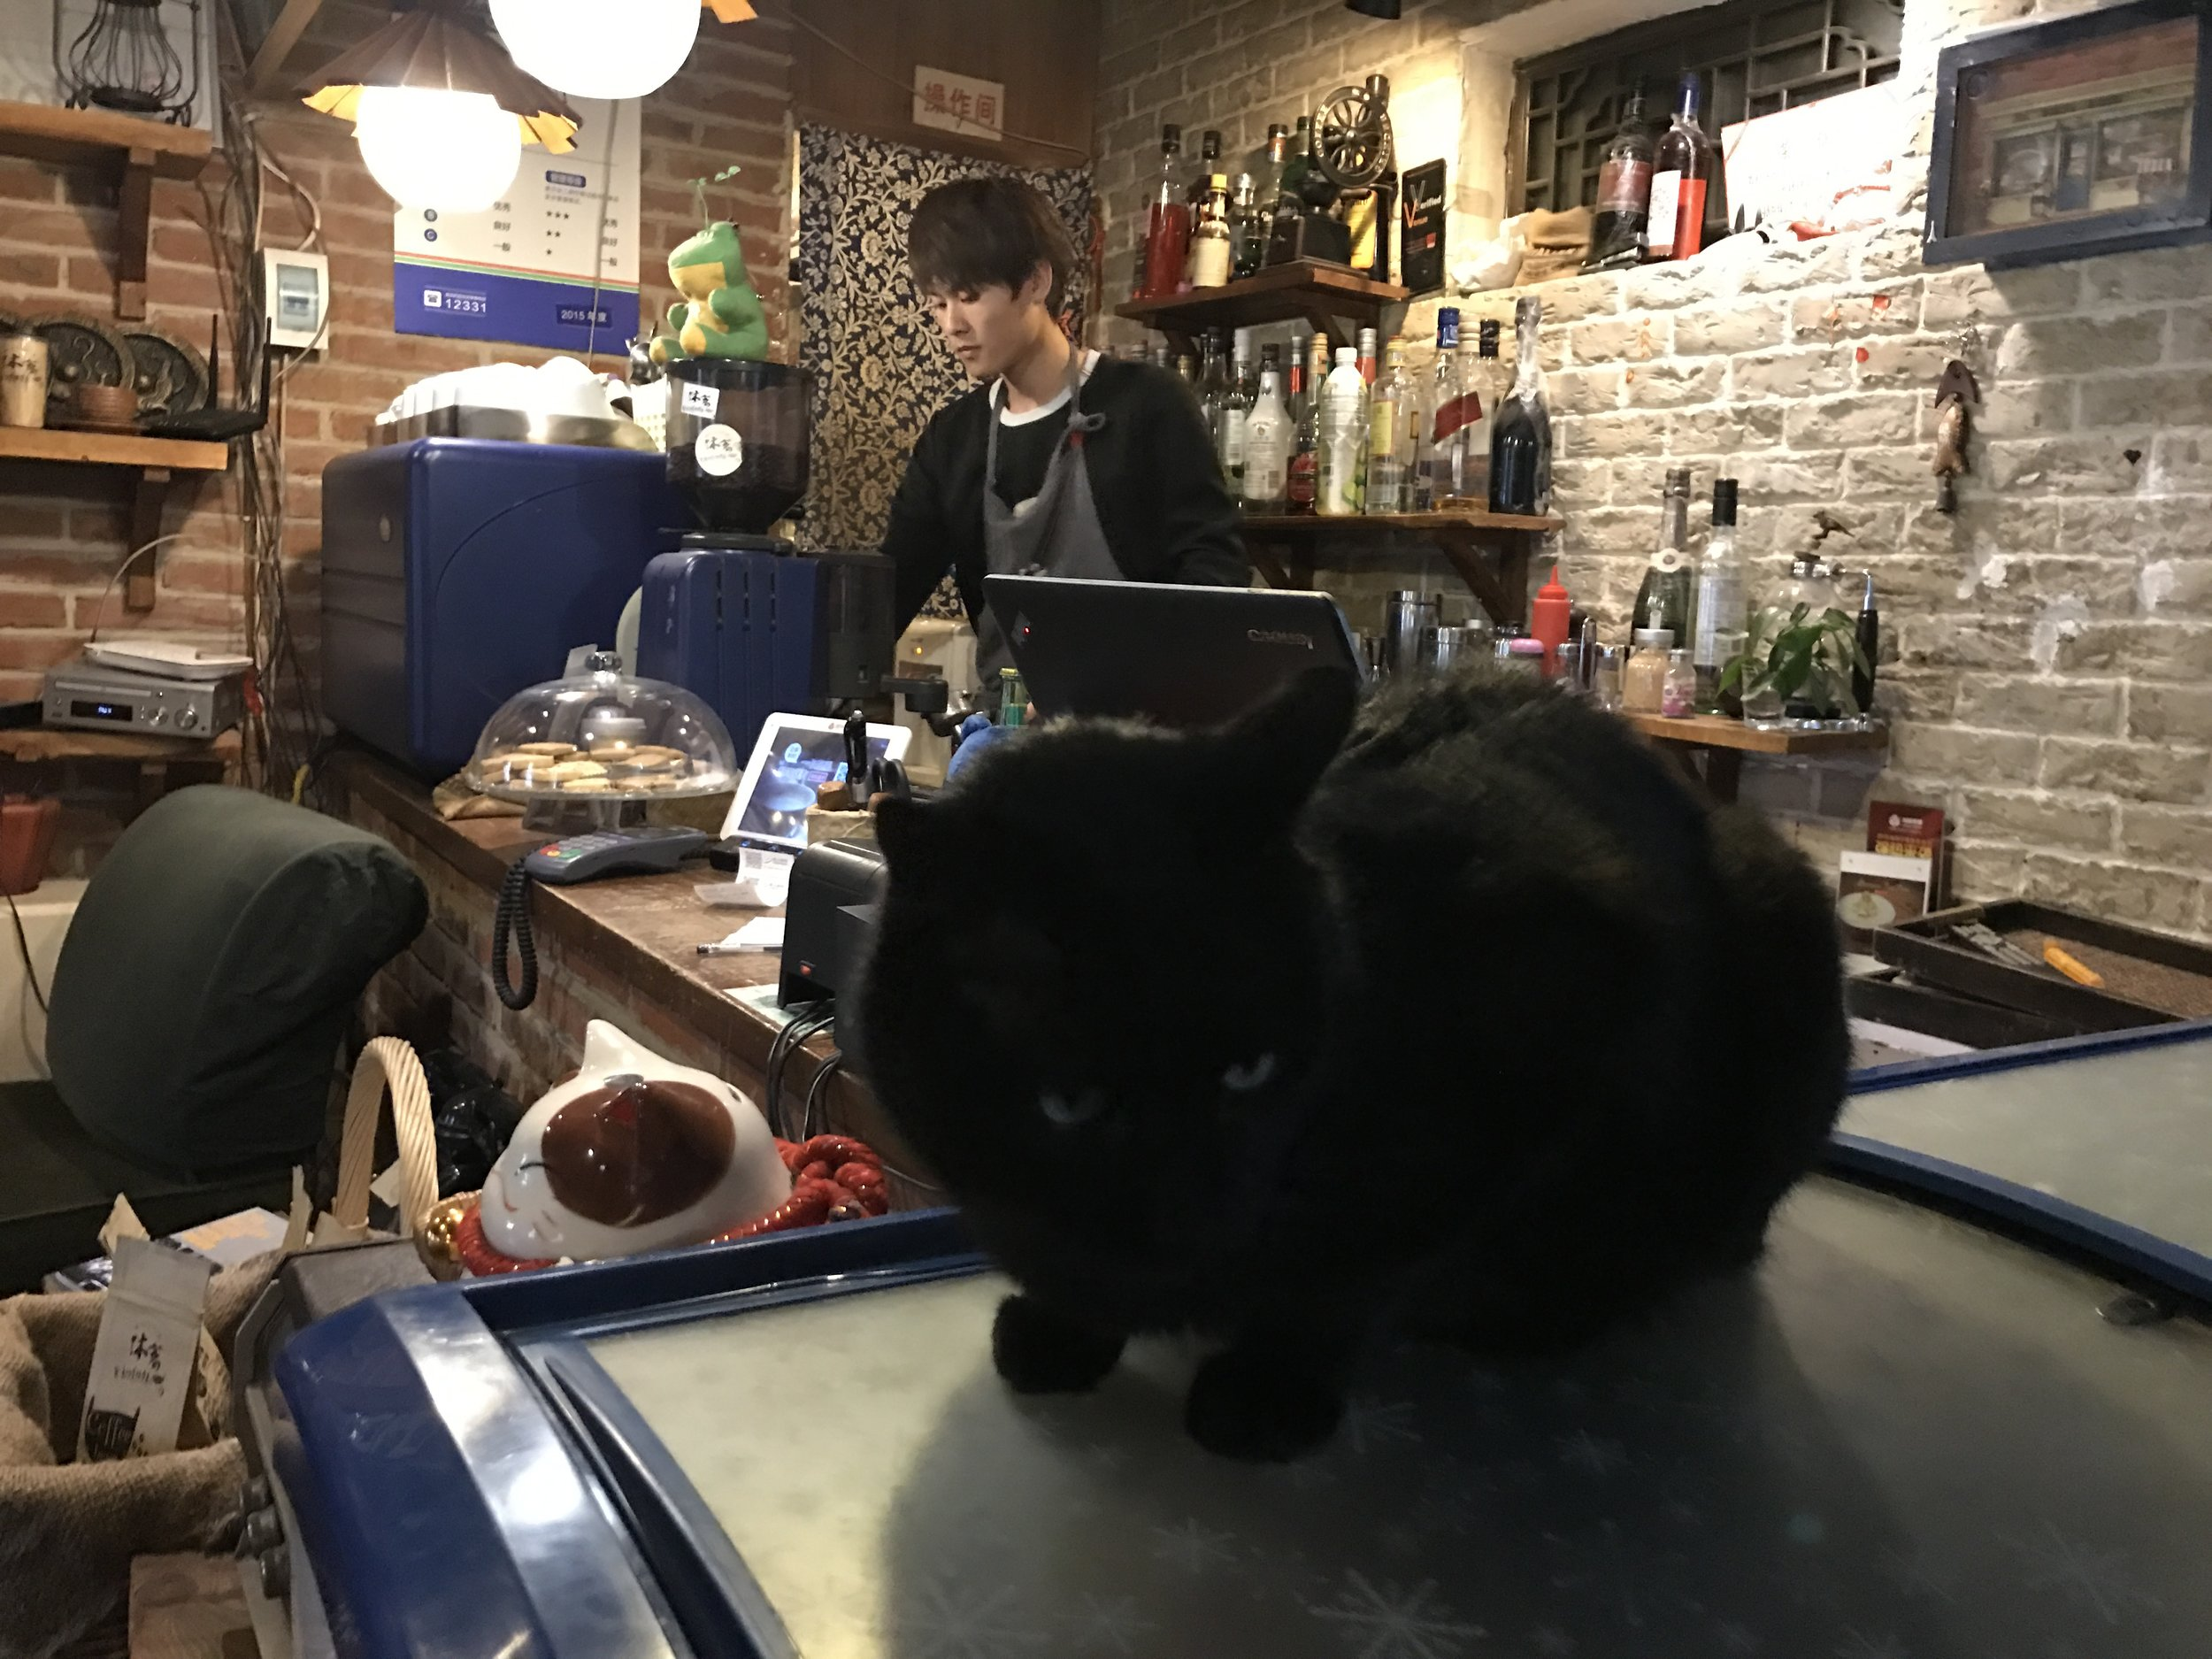 L'infusion has a chill vibe and is more cafe than cat